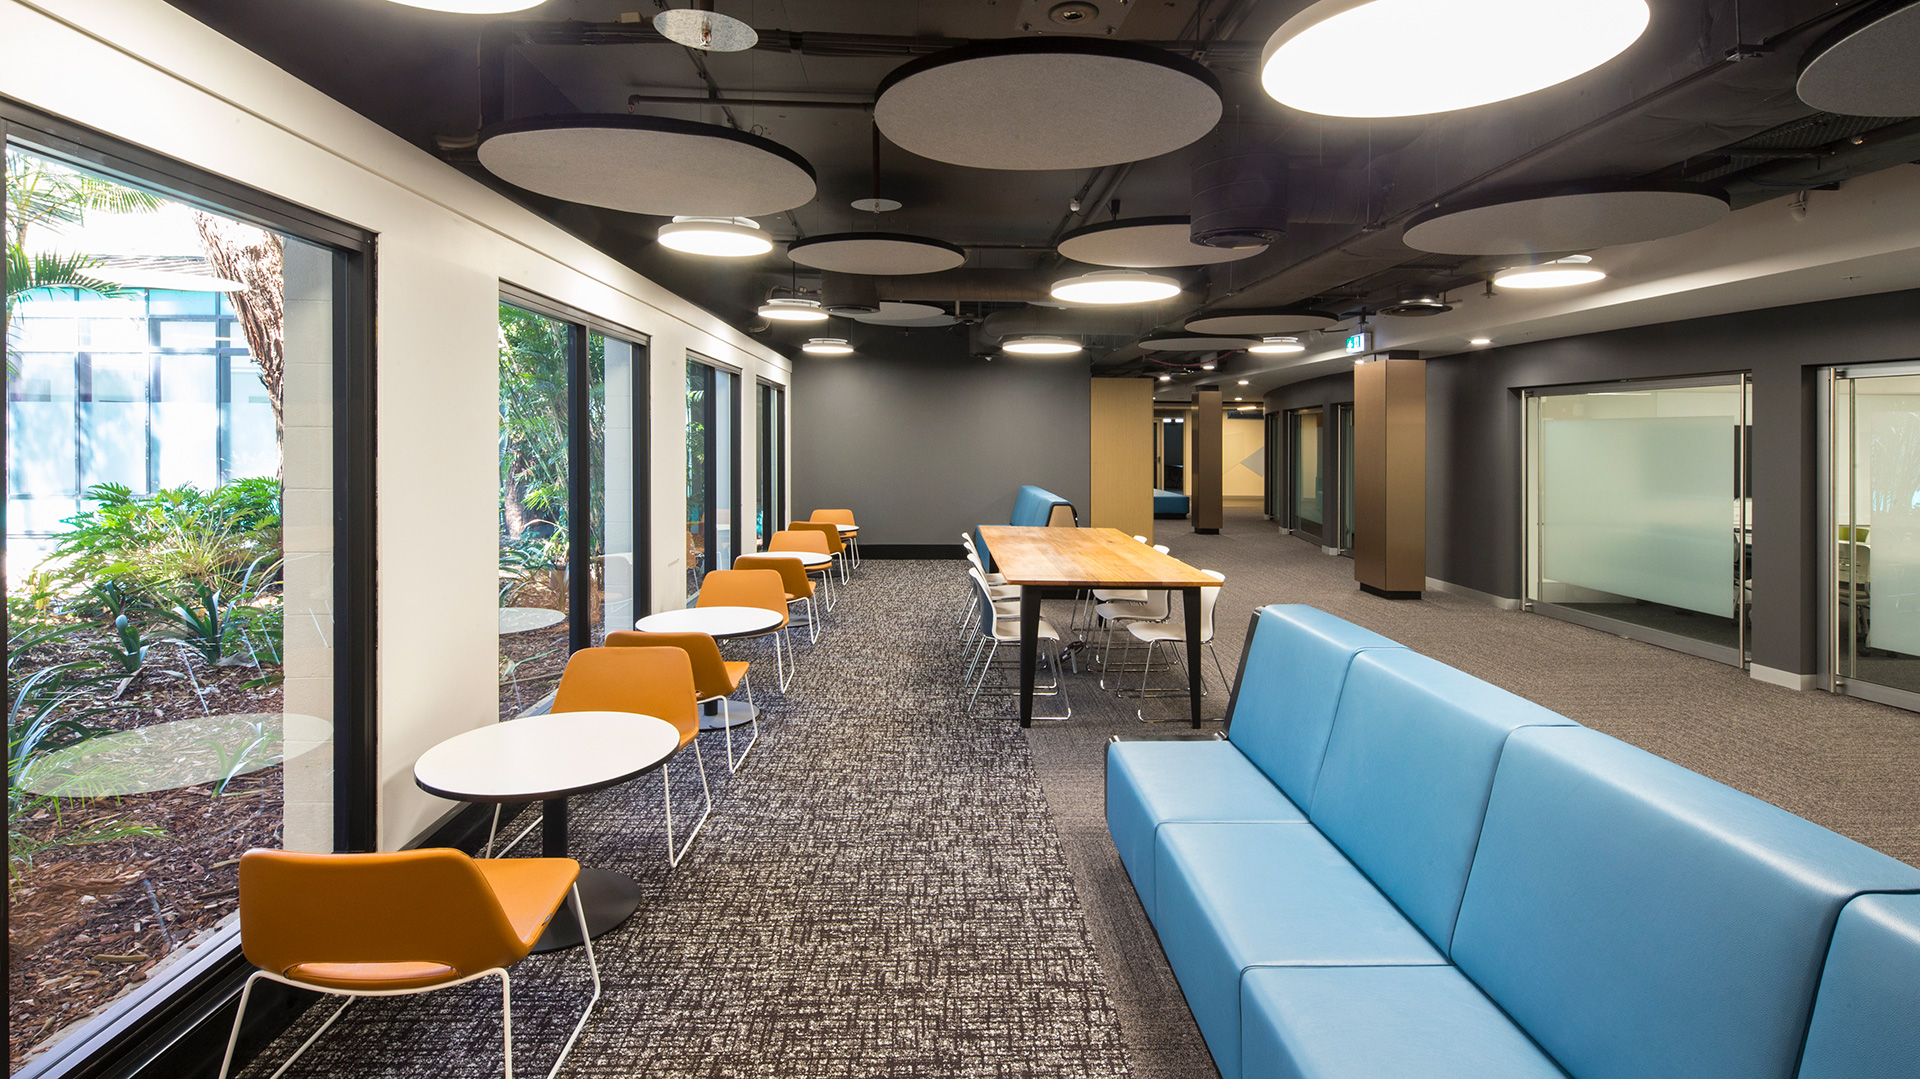 UNSW Mathews L1 CATS Student Meeting and Breakout Space Interior Design – Gardner Wetherill GW 3